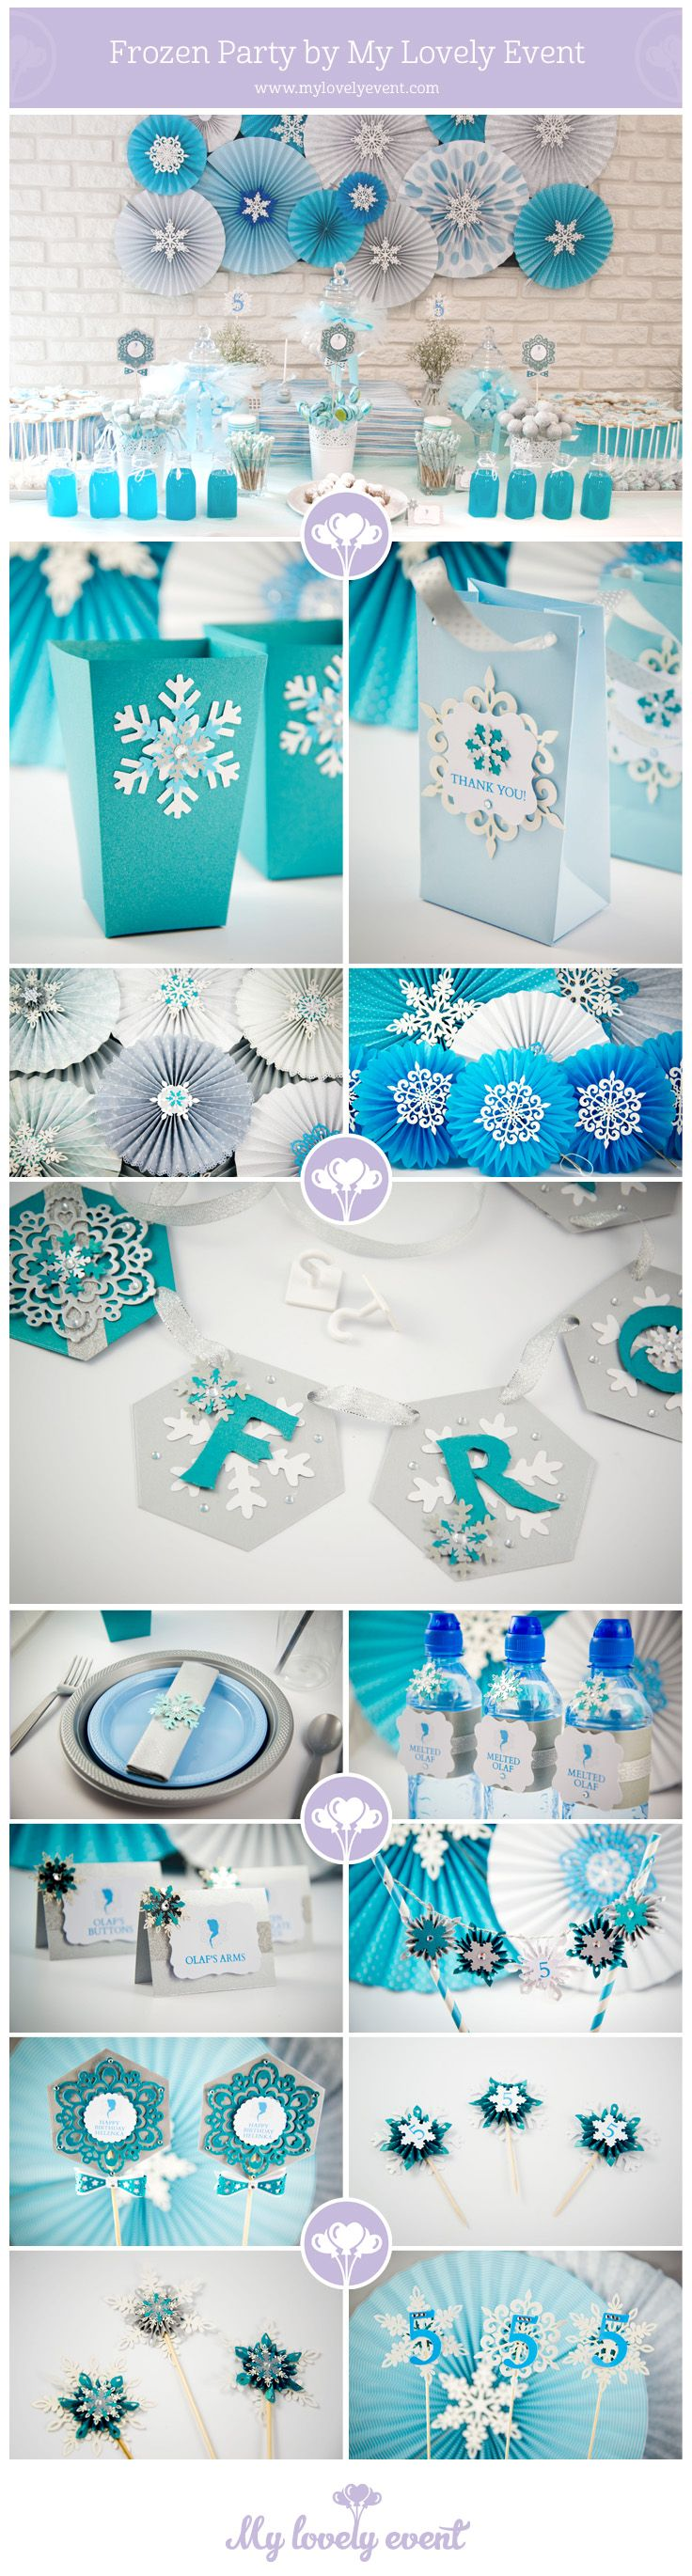 Decorations for the frozen party by My Lovely Event